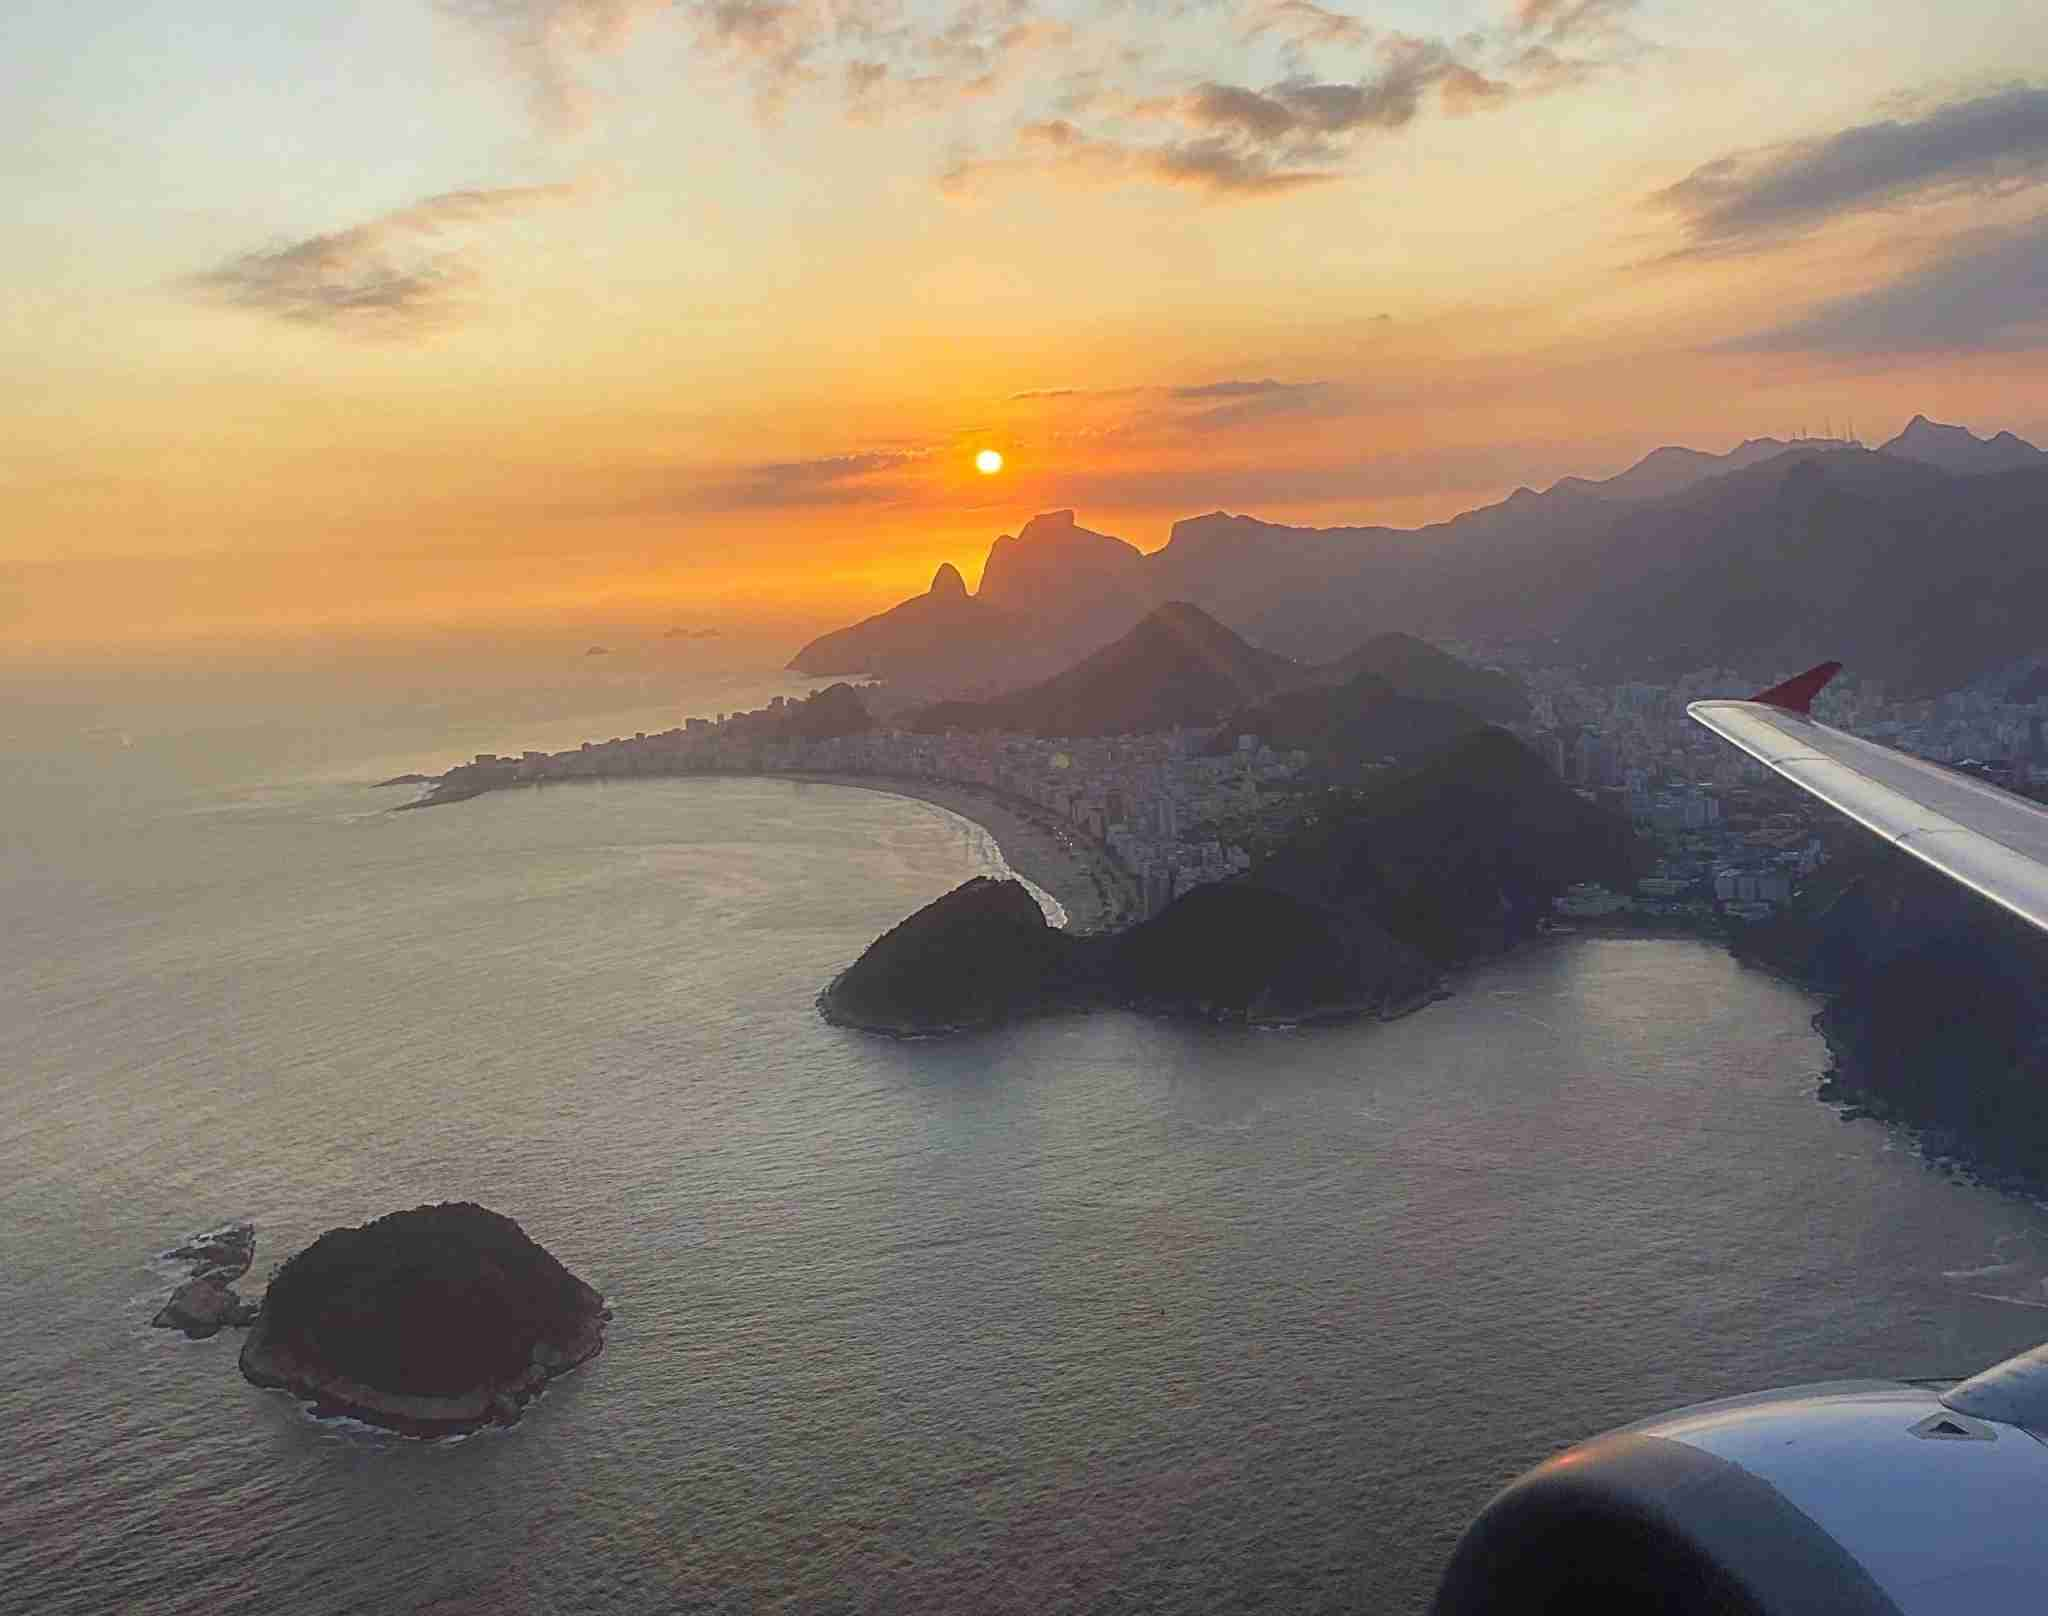 My favourite ever sunset from the wing was captured this year as I flew from Rio de Janeiro (SDU) to São Paulo (CGH) in Brazil (Photo by Daniel Ross/The Points Guy)